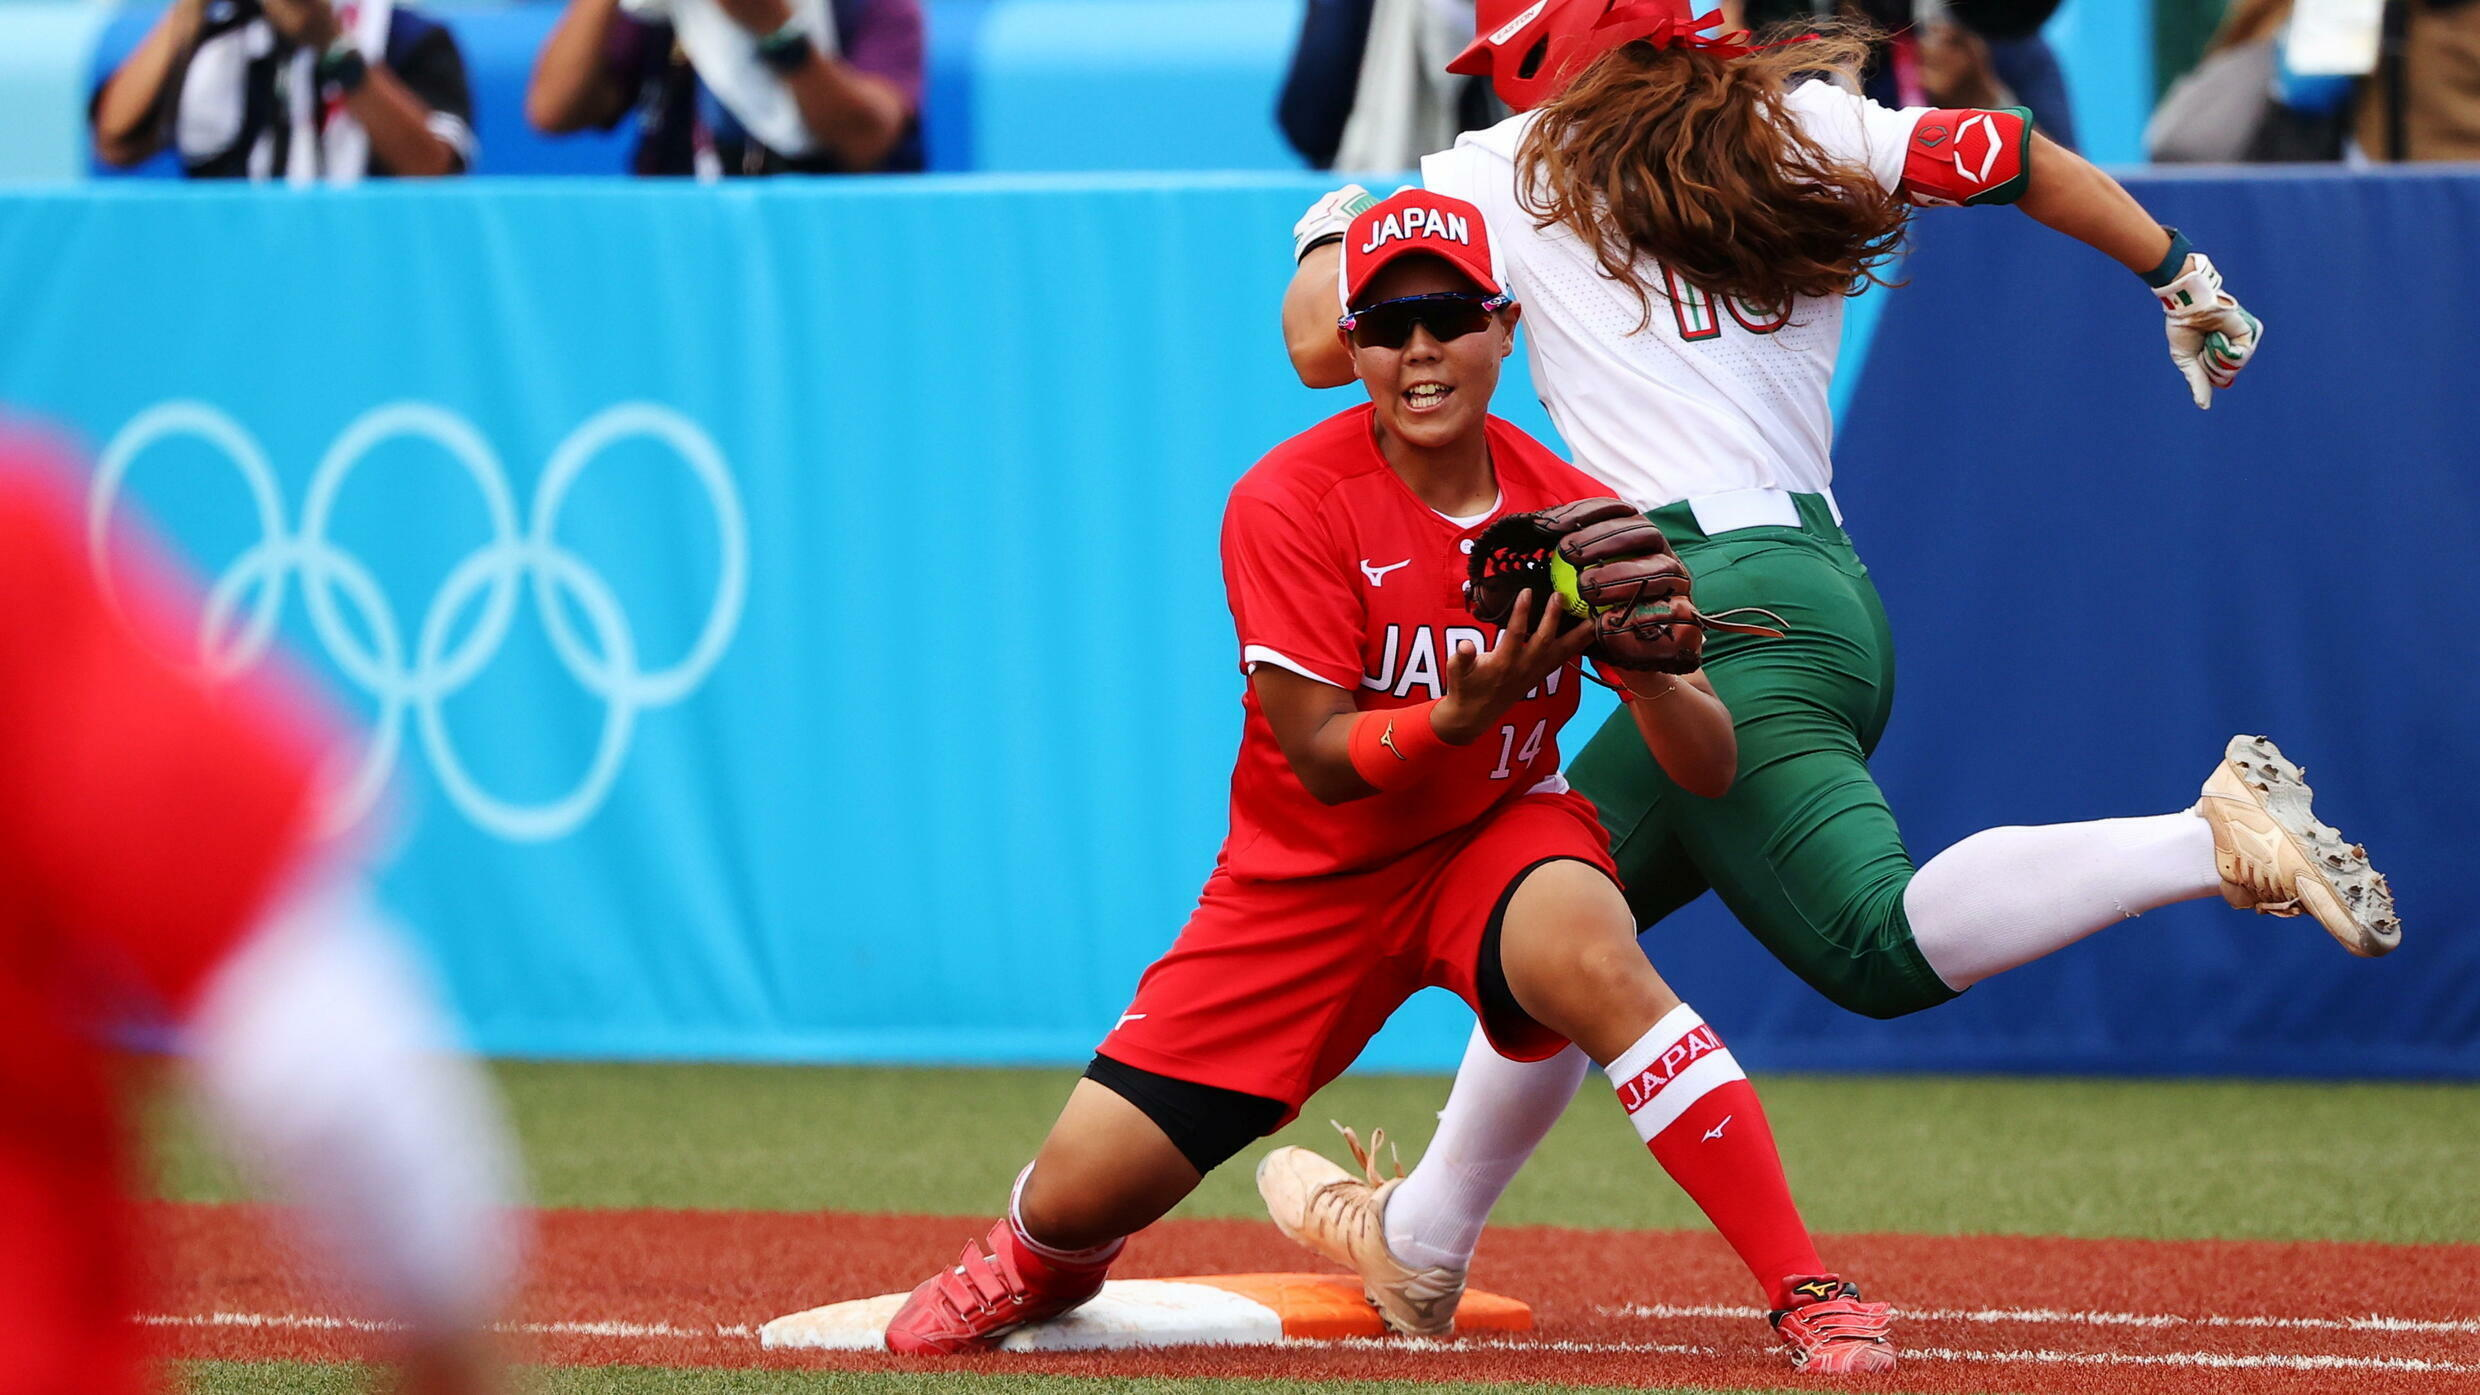 Japan's Minori Naito and Mexico's Nicole Rangel during the softball game between the Mexico and Japan during the Olympics in Tokyo.